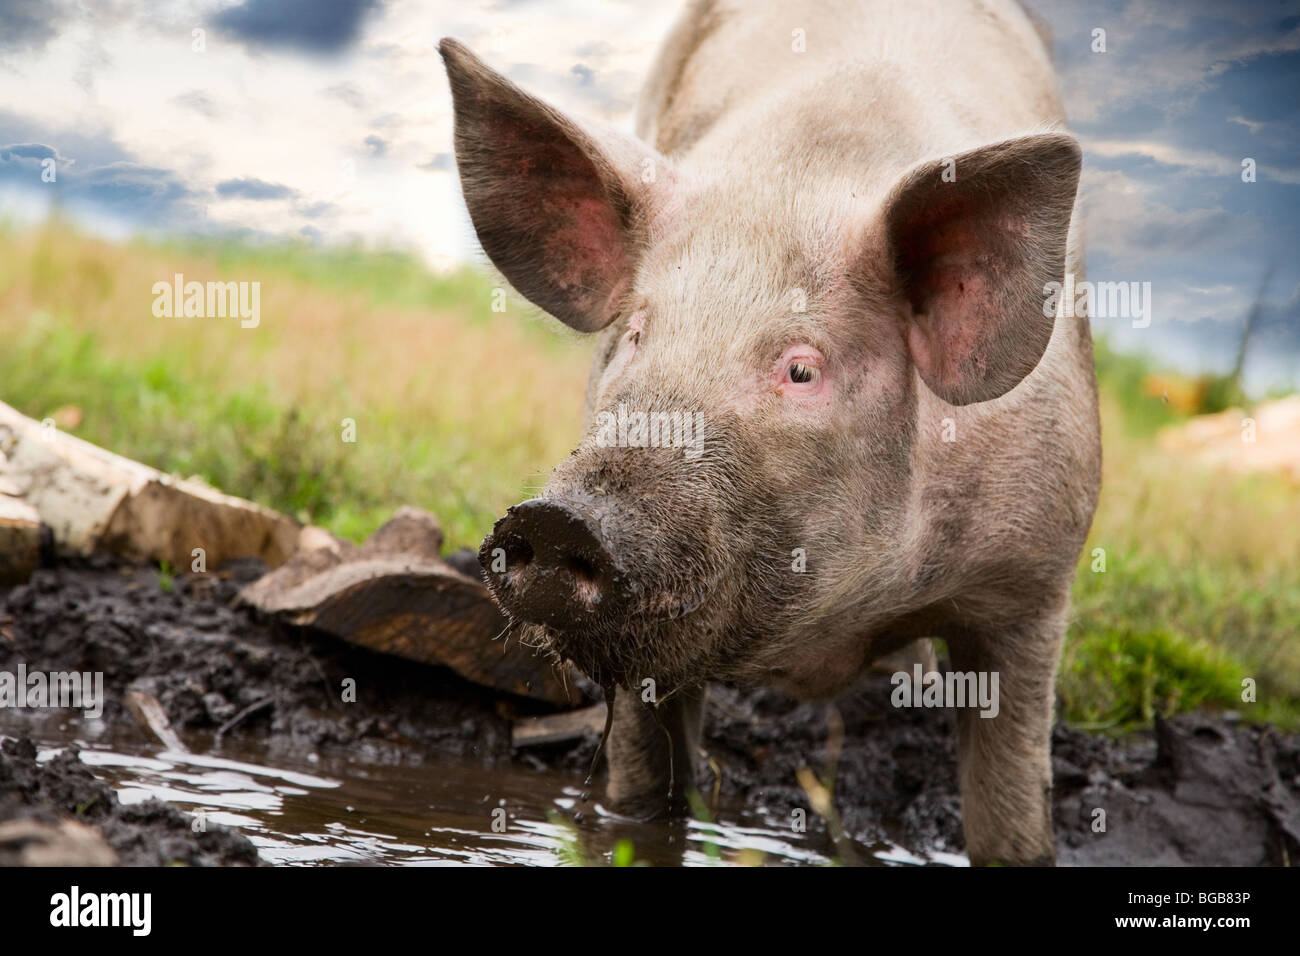 Pig on a background of grass and sky - Stock Image